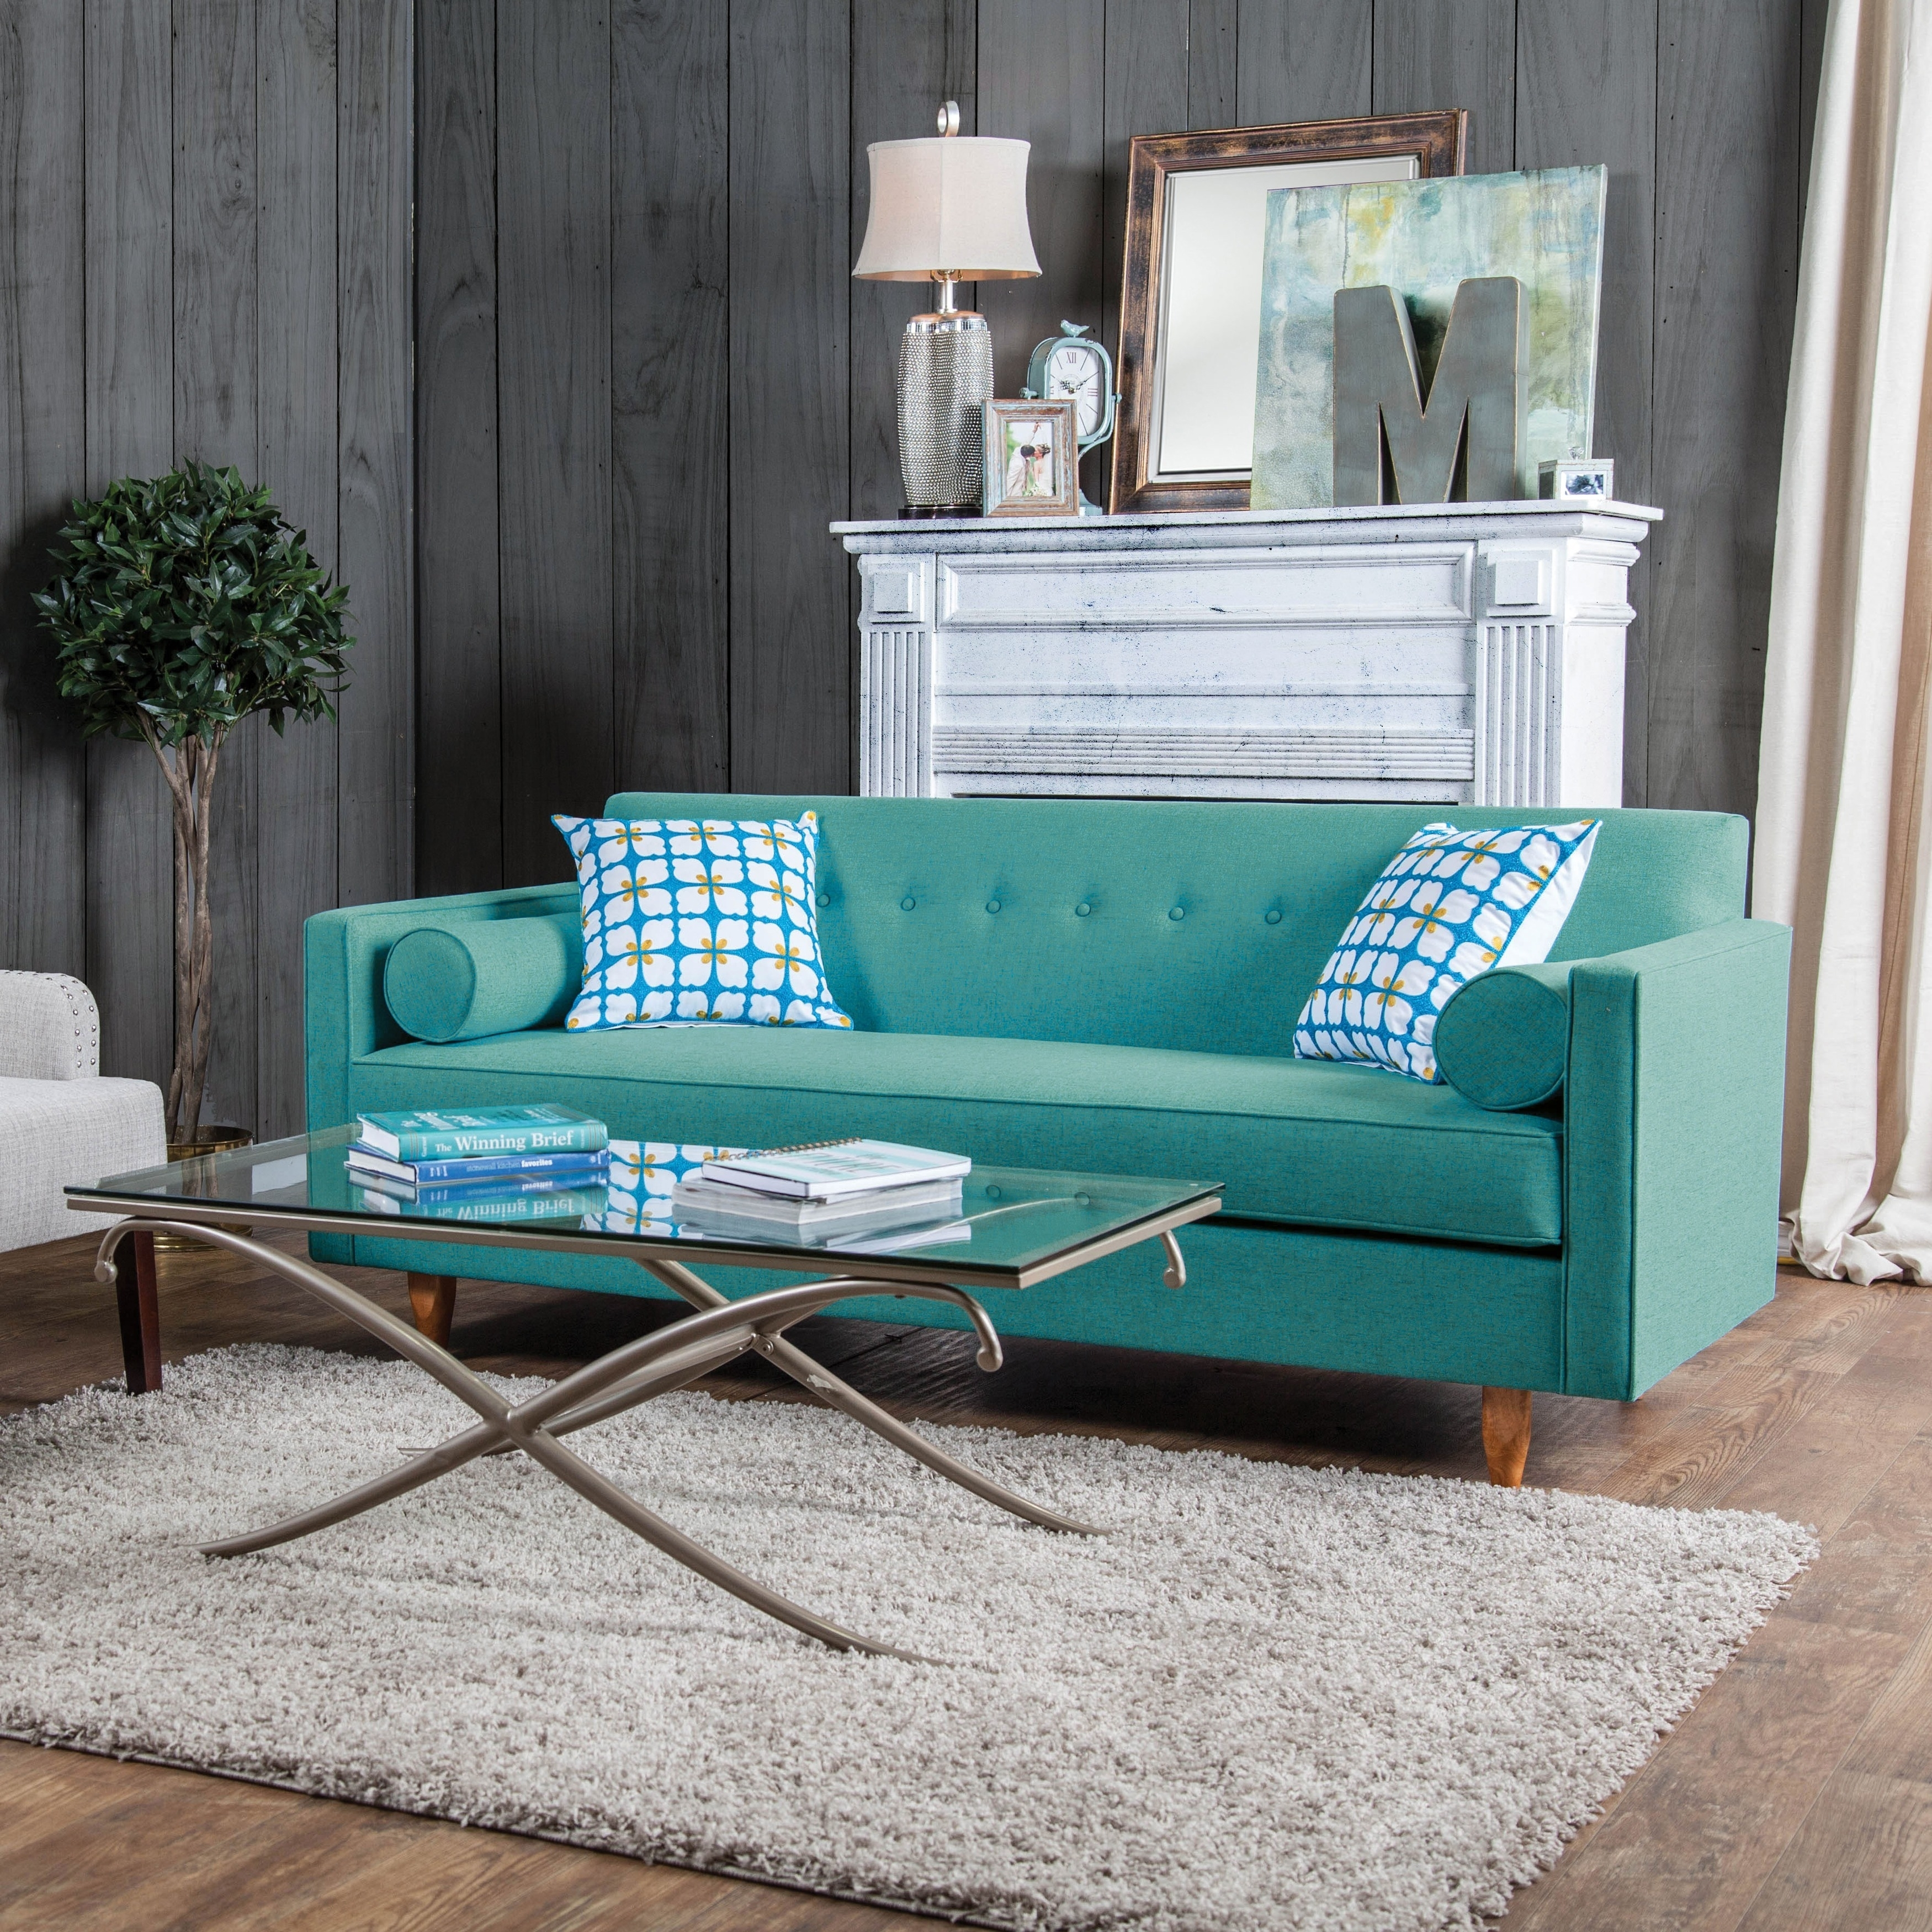 Living Room : Turquoise Couch Kids Couch Turquoise Sofas & Loveseats Regarding Turquoise Sofas (View 8 of 10)